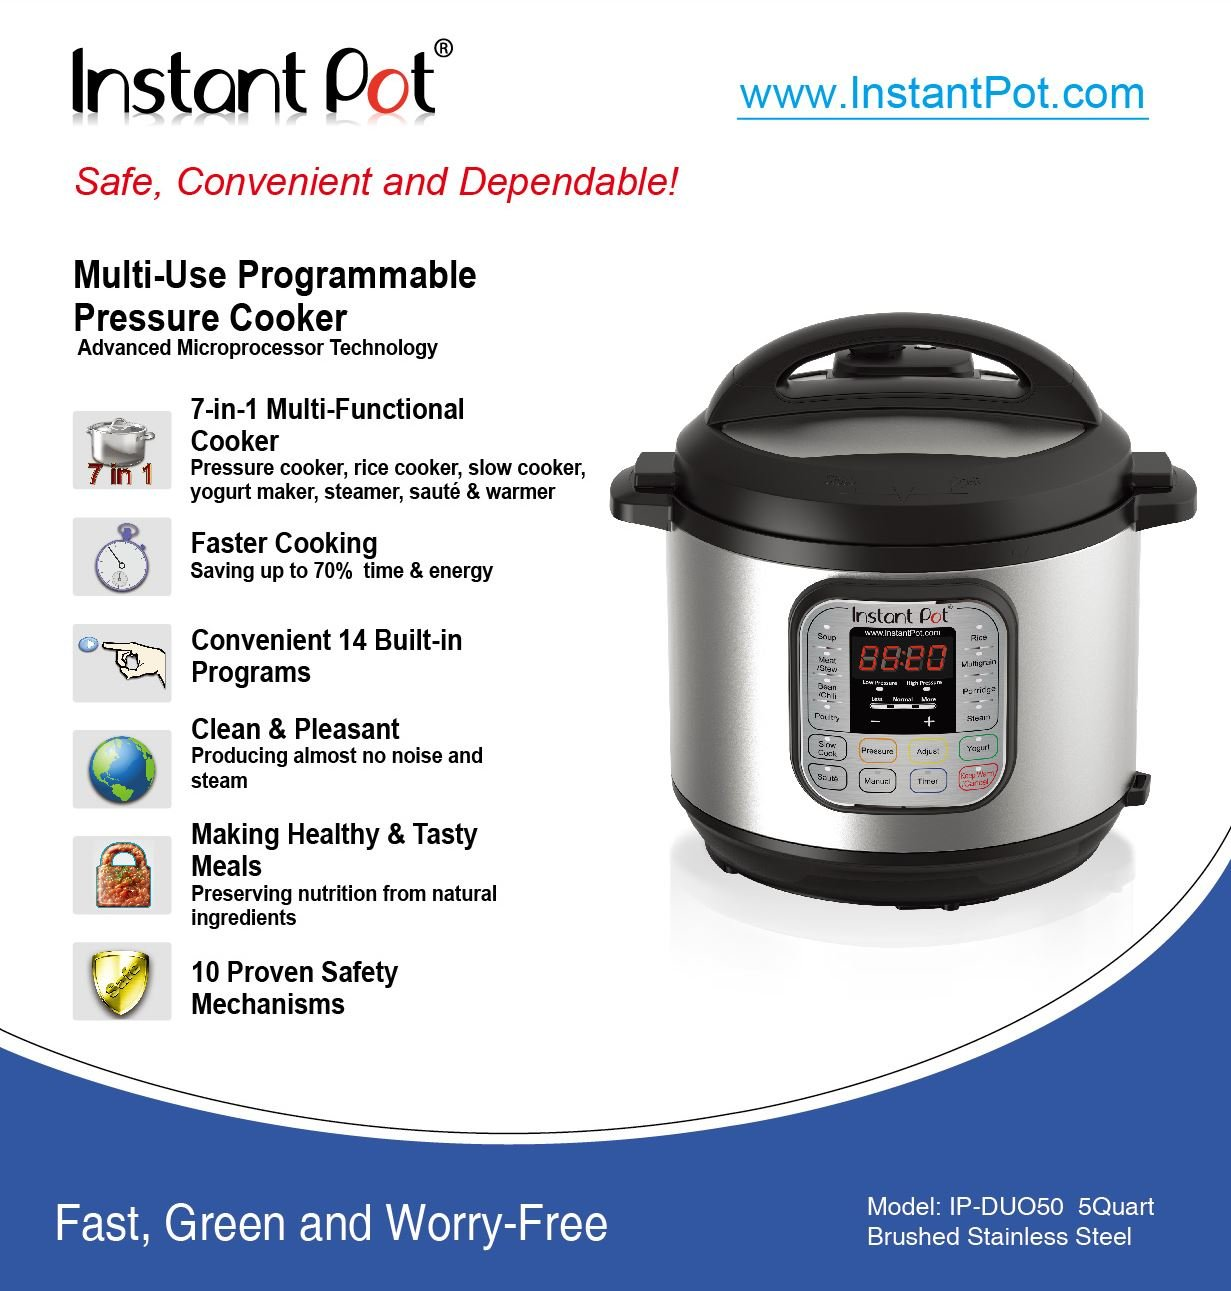 Instant Pot DUO50 7-in-1 Multi-Use Programmable Pressure Cooker, 5 Quart/900W by Instant Pot (Image #6)